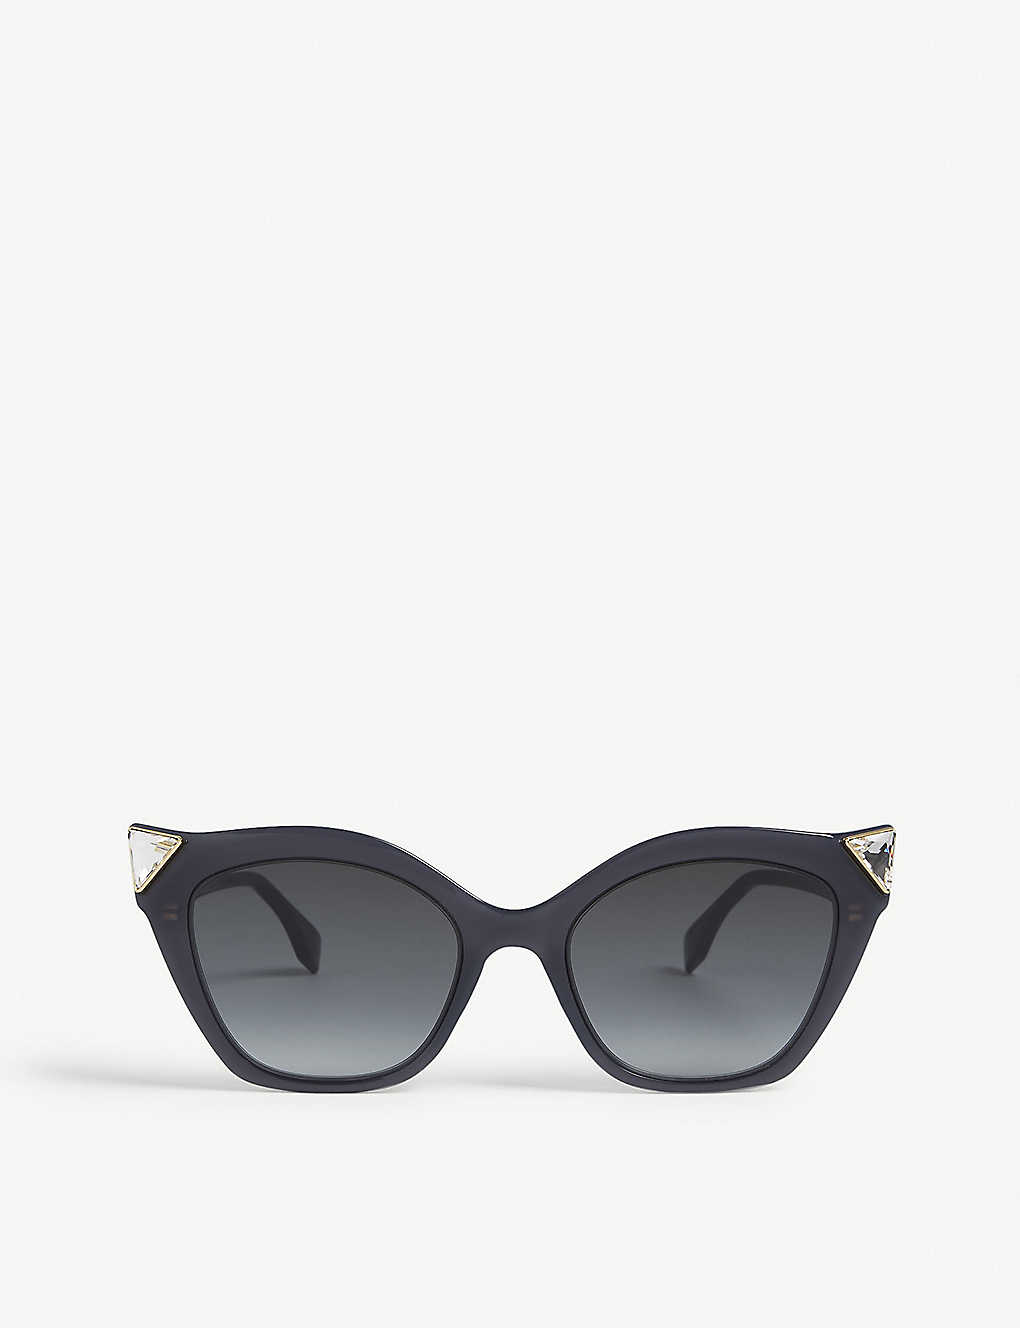 7b05e837abbd2 FF0357 cat-eye-frame sunglasses - Black ...